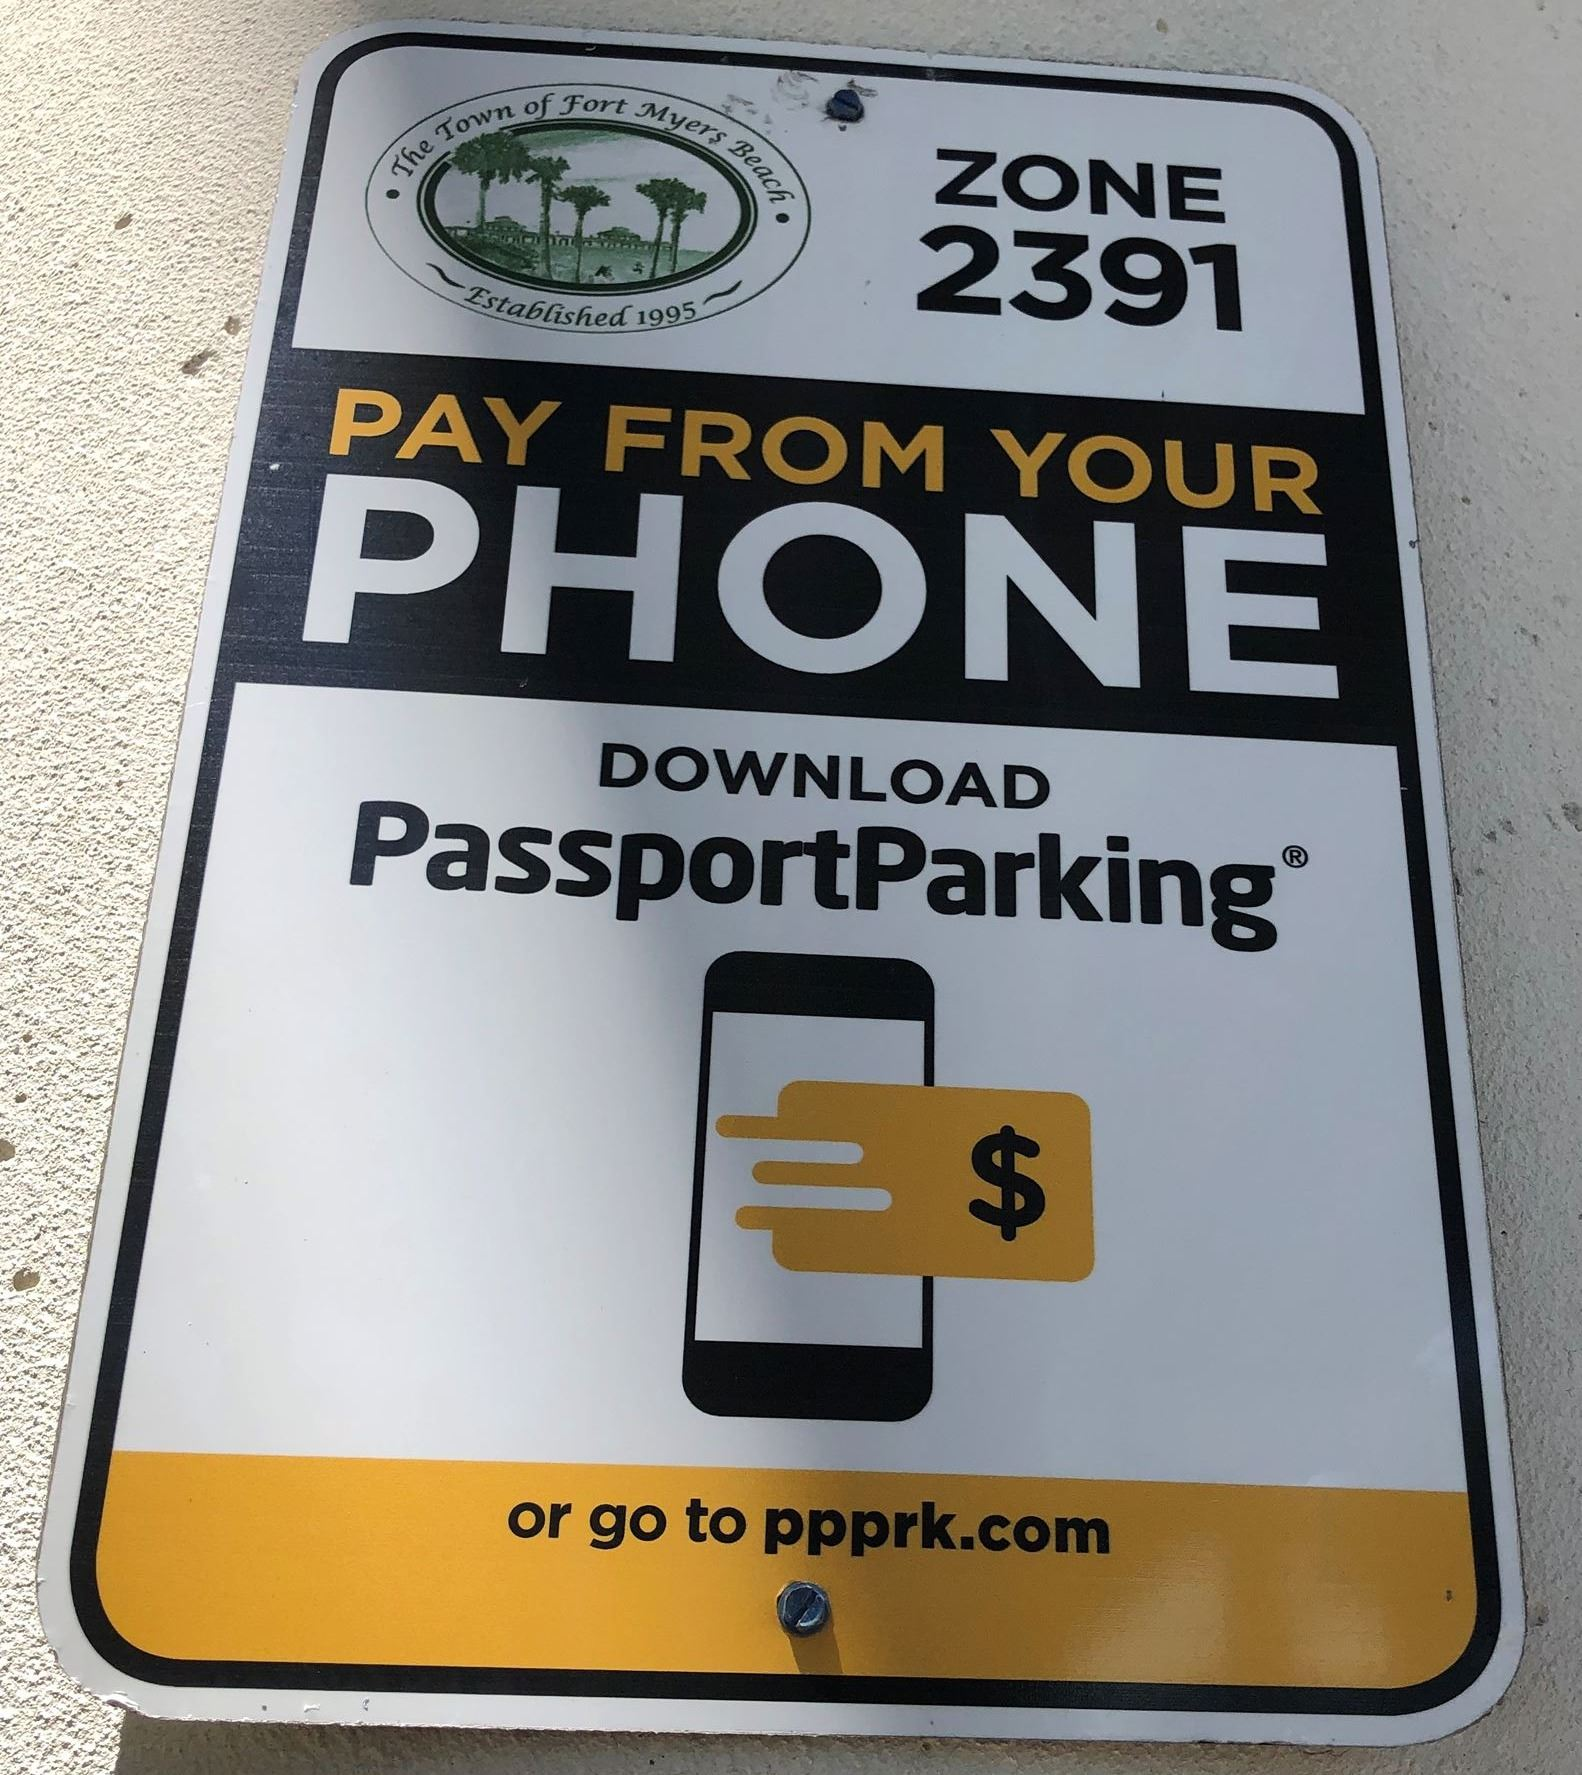 passpaort parking signs matanzas